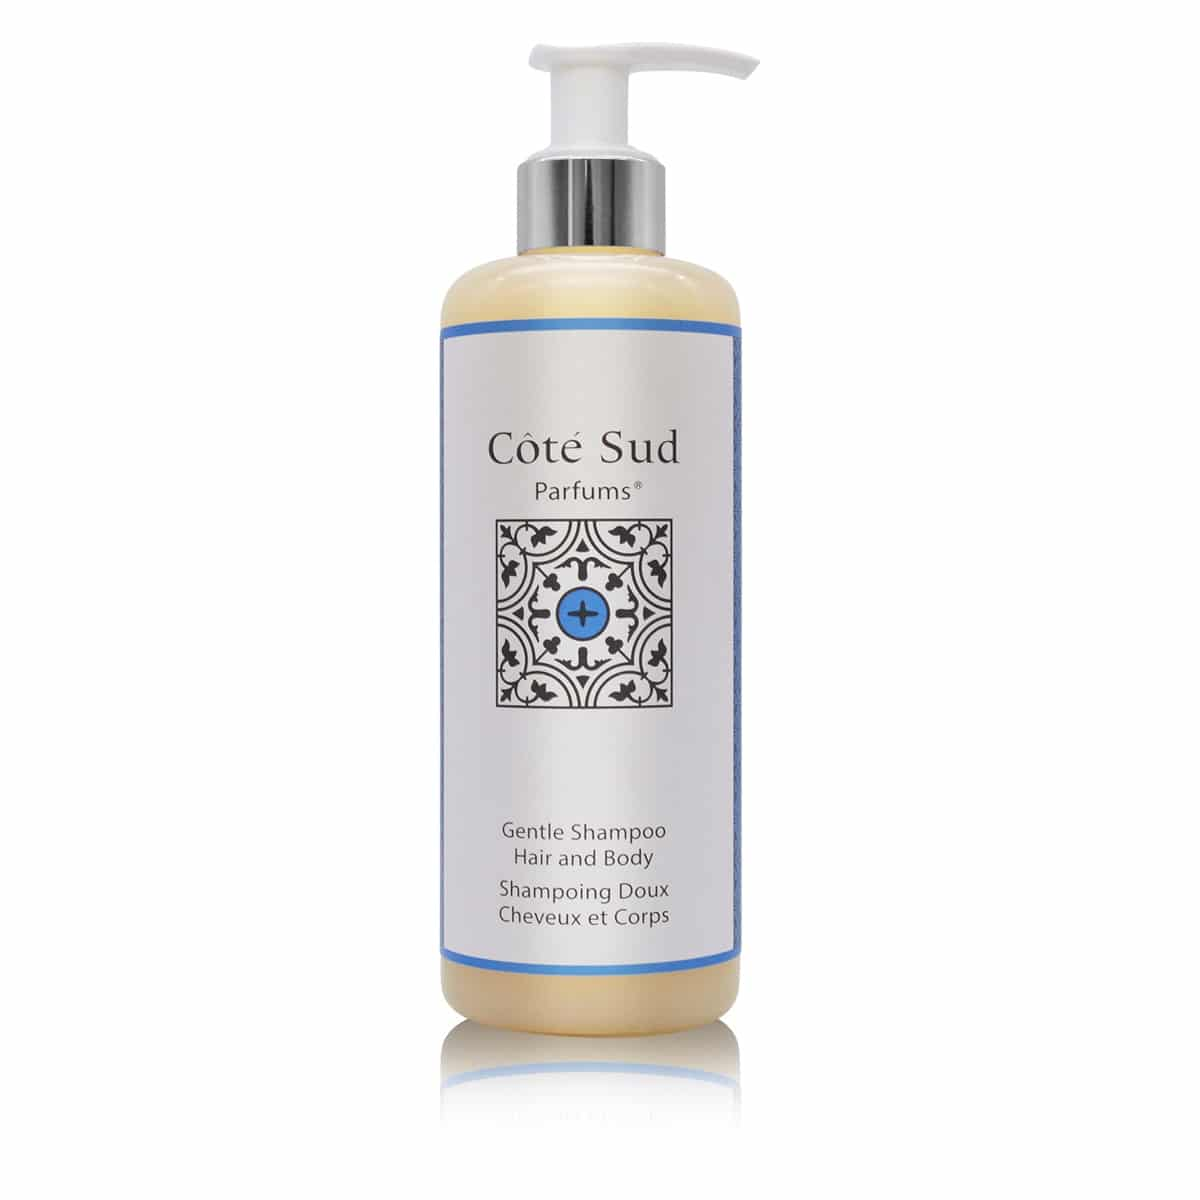 Extra Gentle Shampoo for hair & body | Côté Sud Parfums